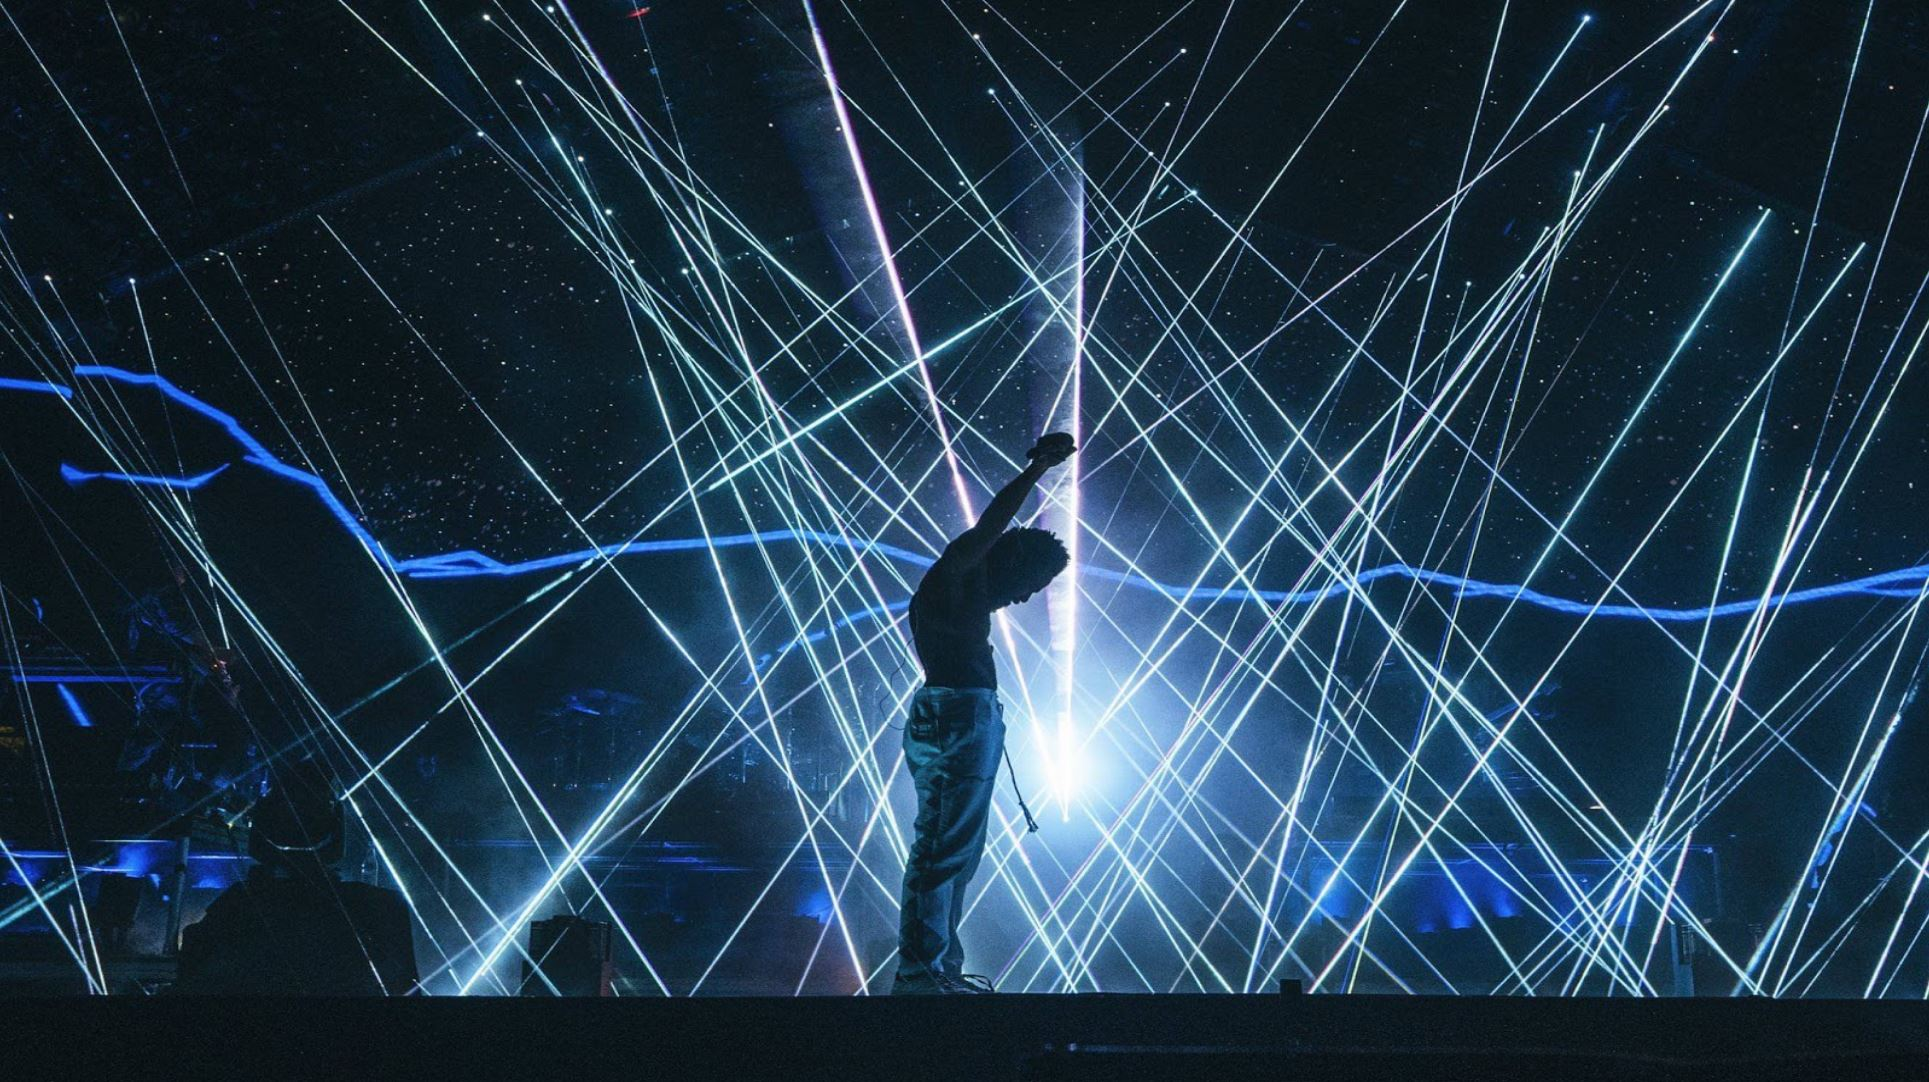 Childish Gambino performing with lasers.